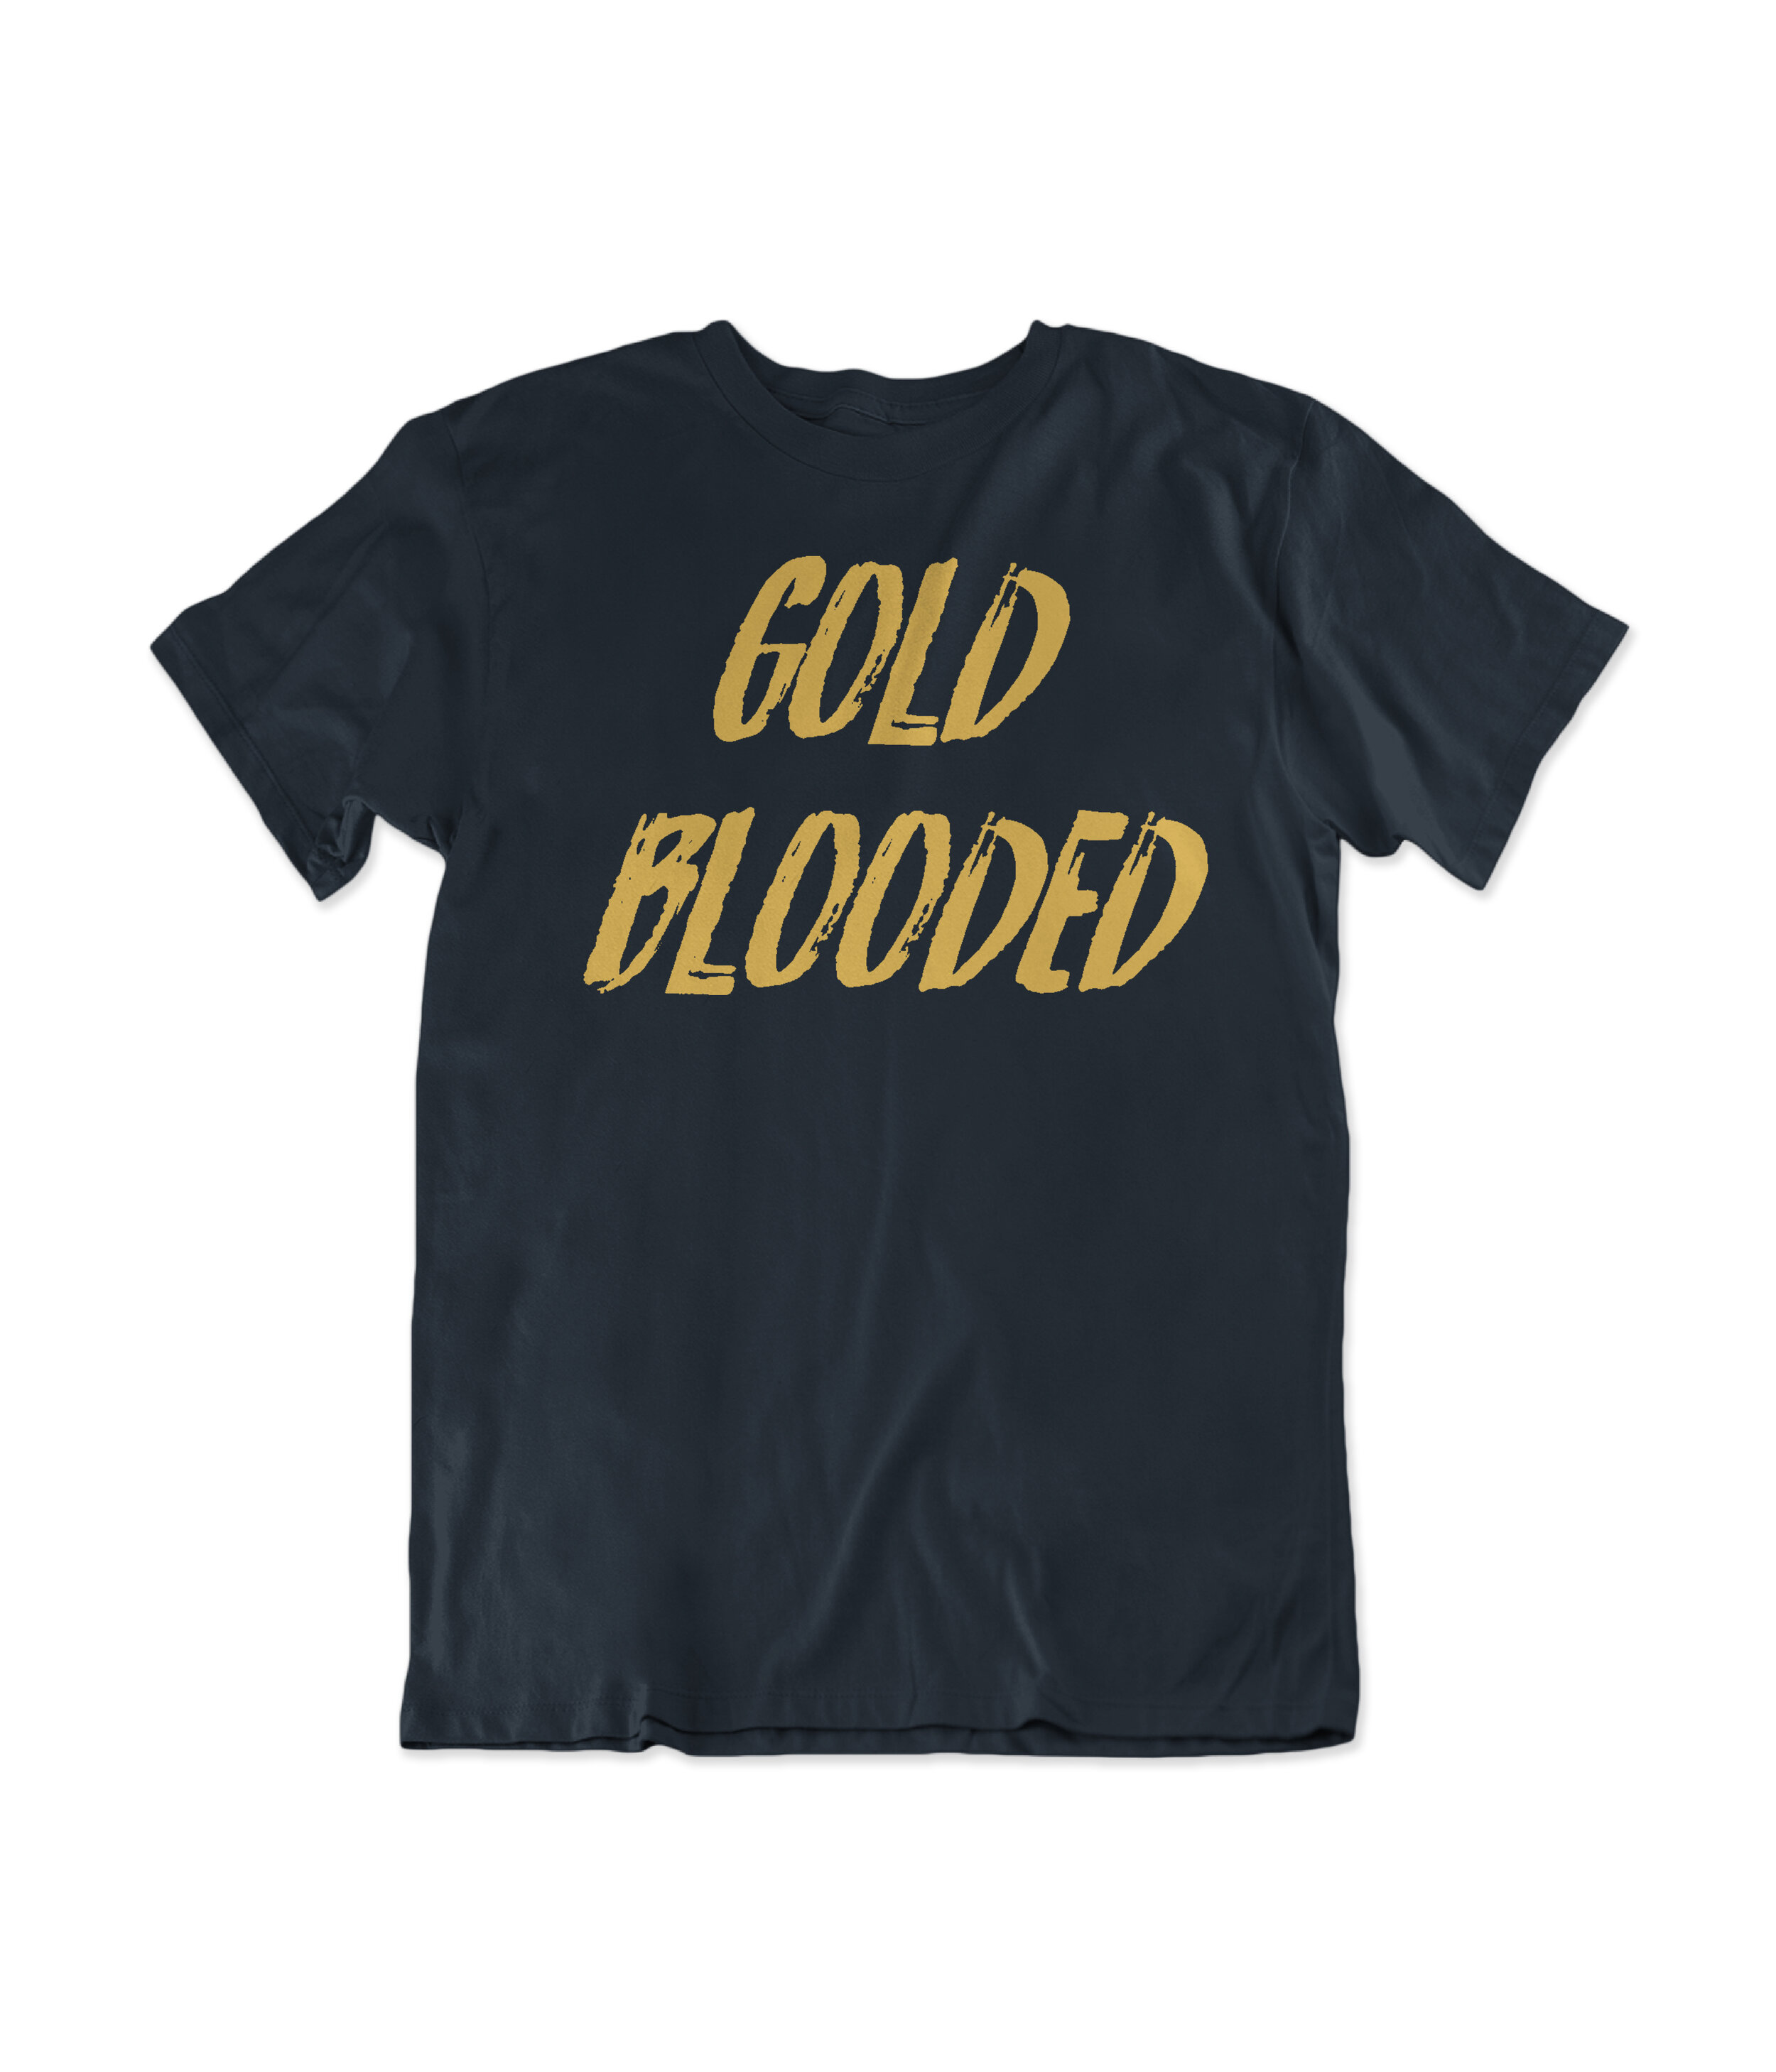 Gold Blooded Shirt Entry.jpg